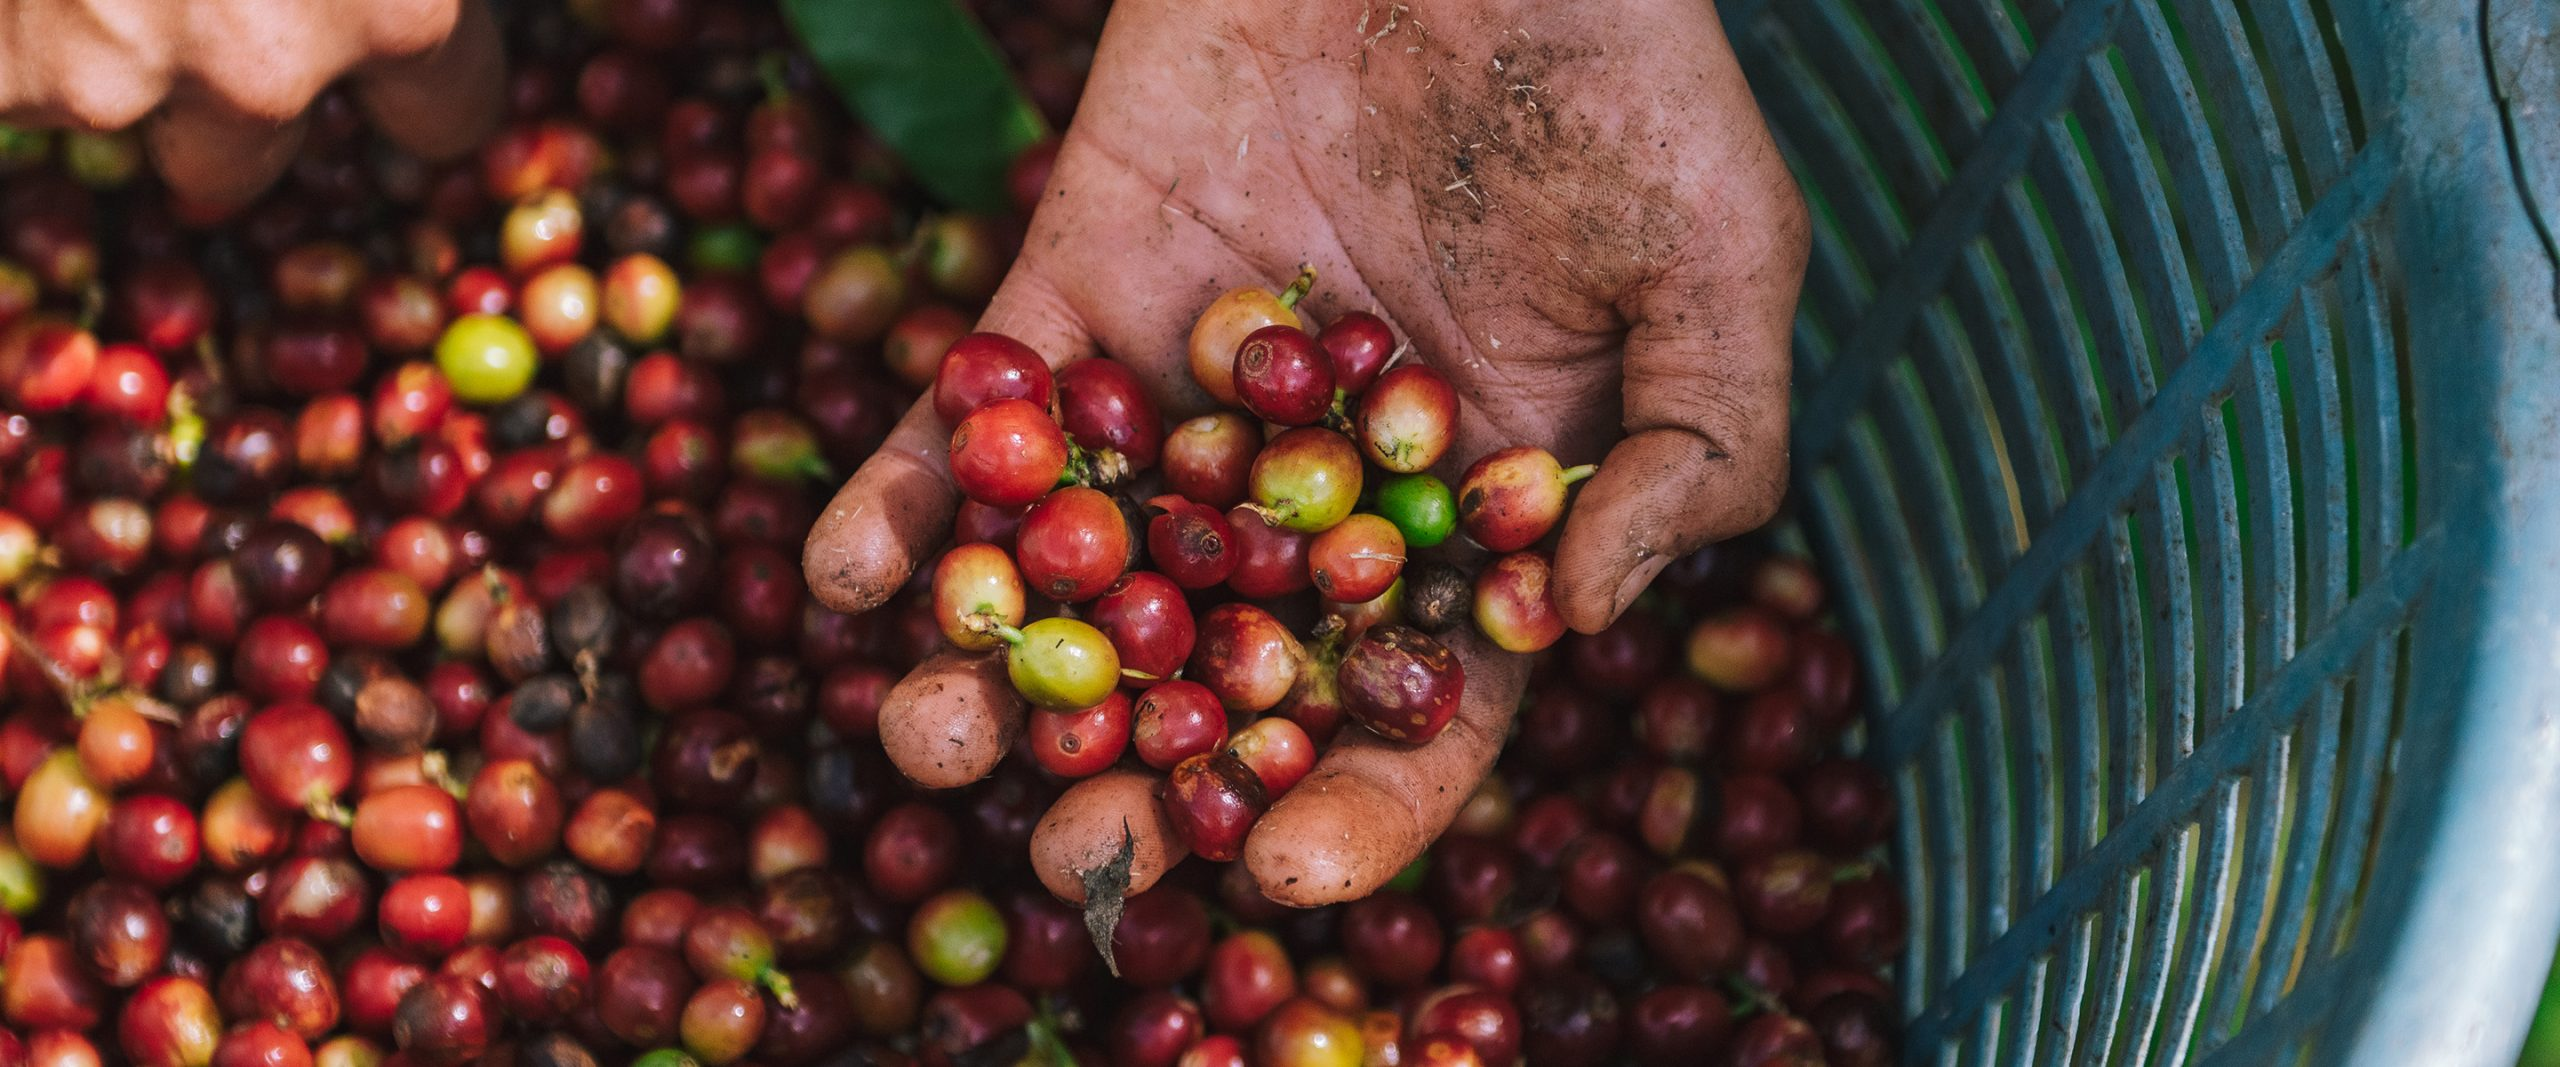 Bean Equality: Narrowing the Gender Gap in Coffee Production